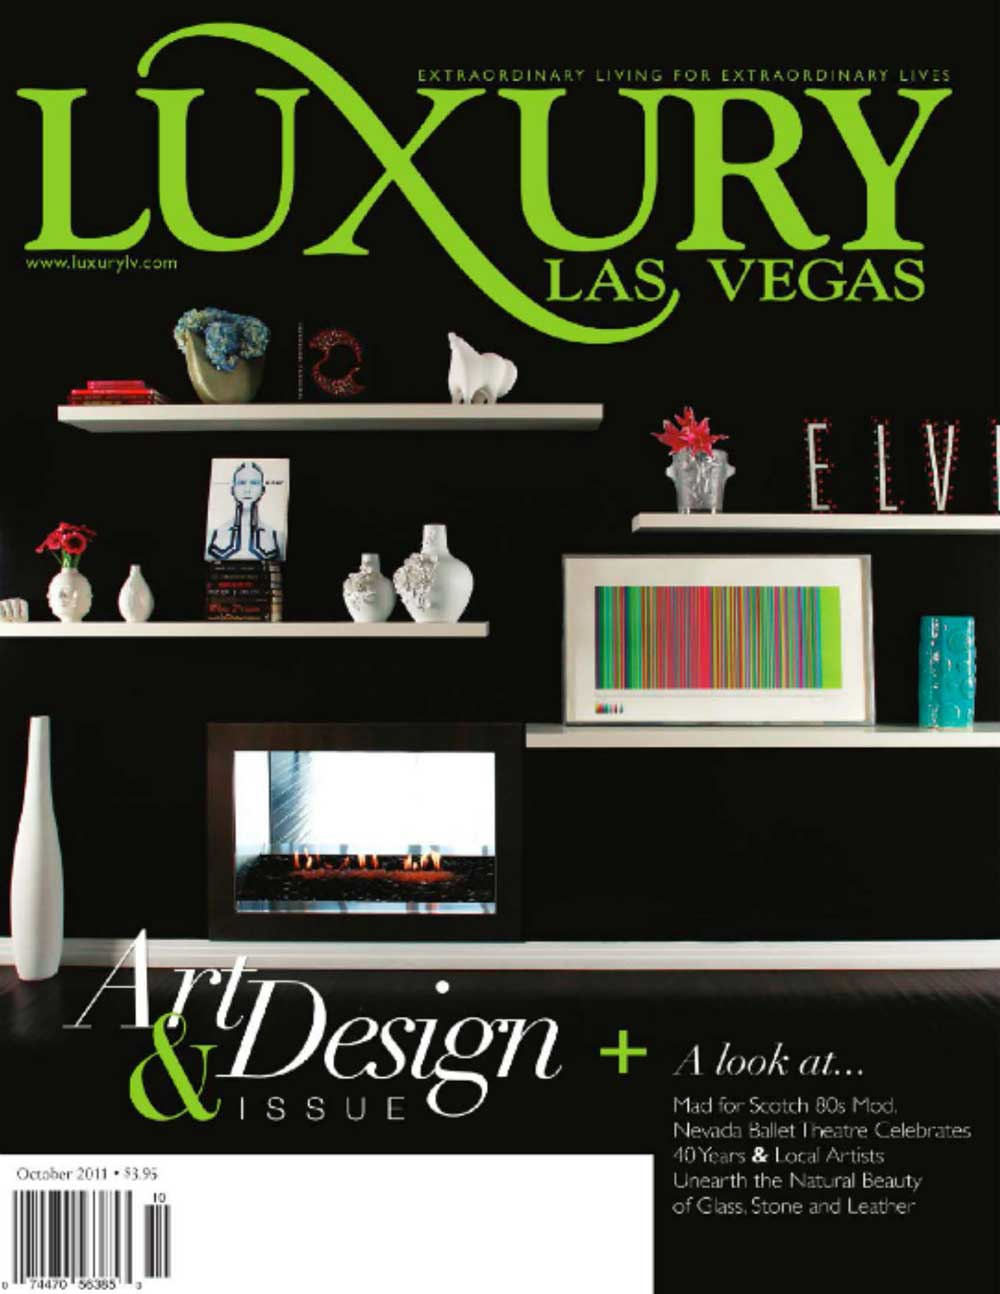 Luxury Magazine October 1st 2011 featuring Dorit Schwartz Sculptor